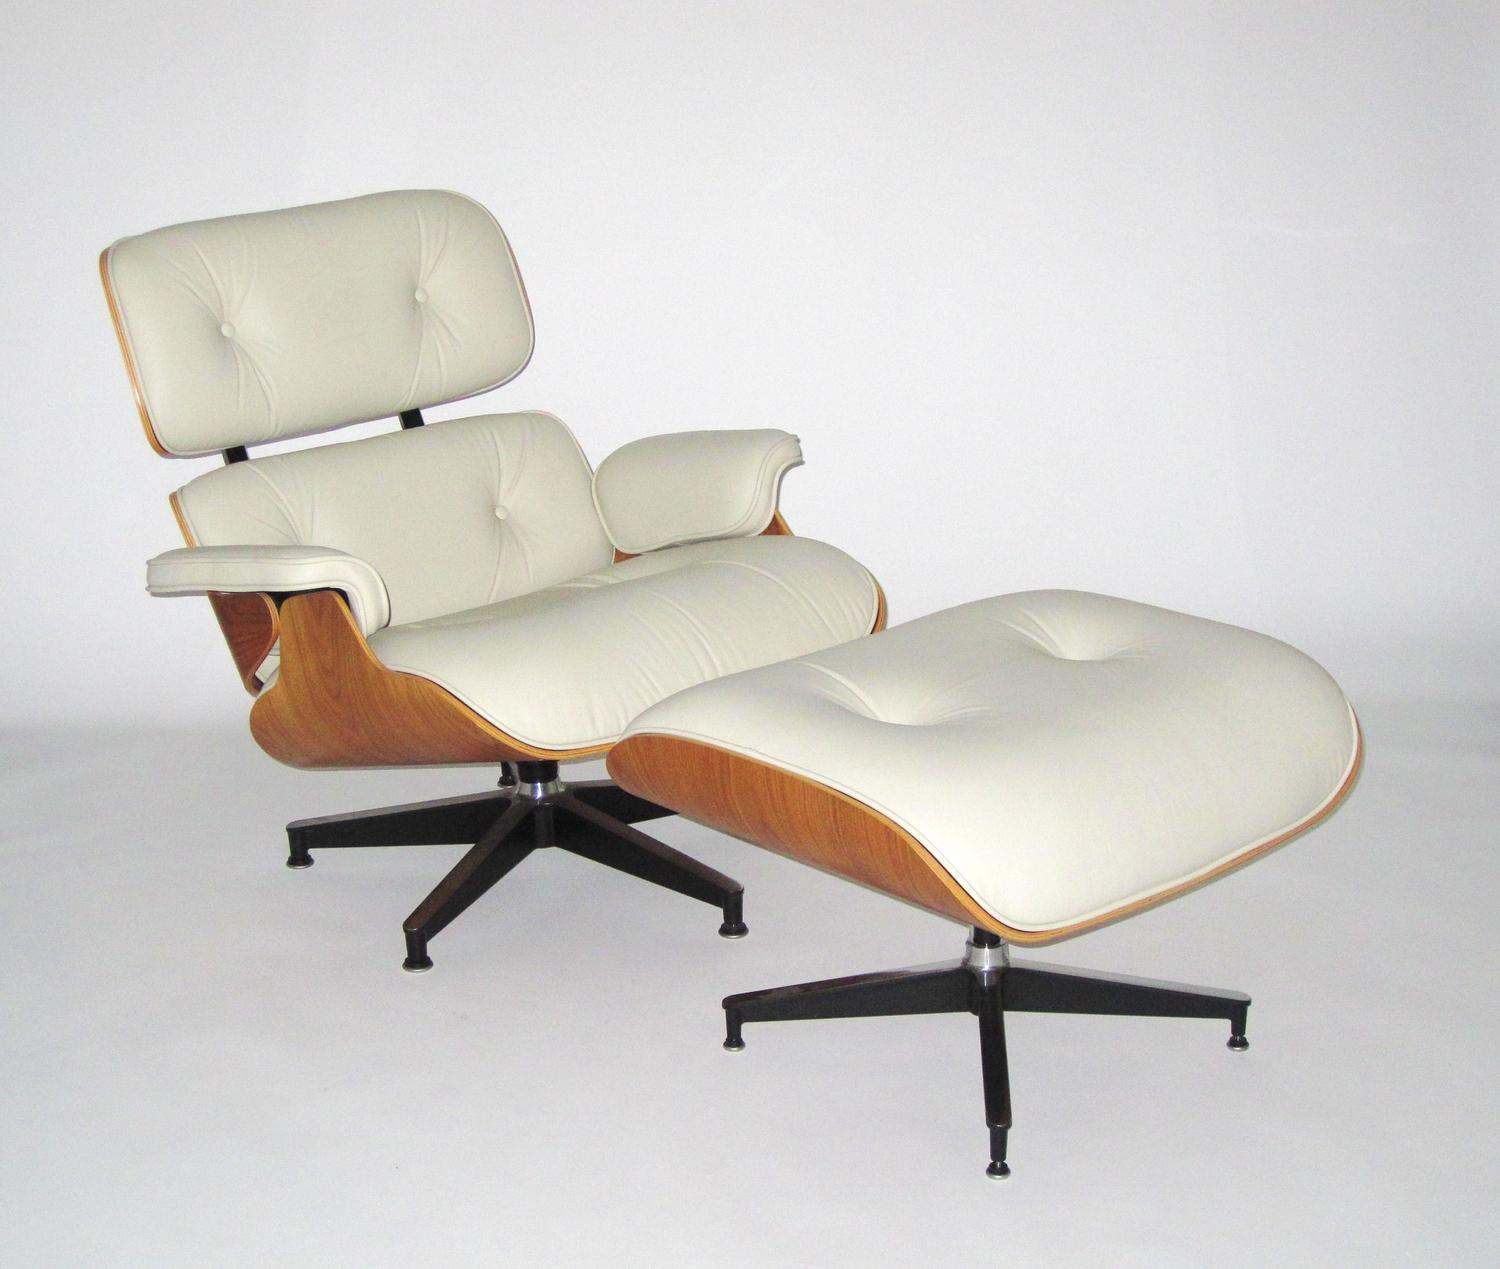 Charles And Ray Eames For Herman Miller Recliner With Ottoman 2005 Loading Zoom